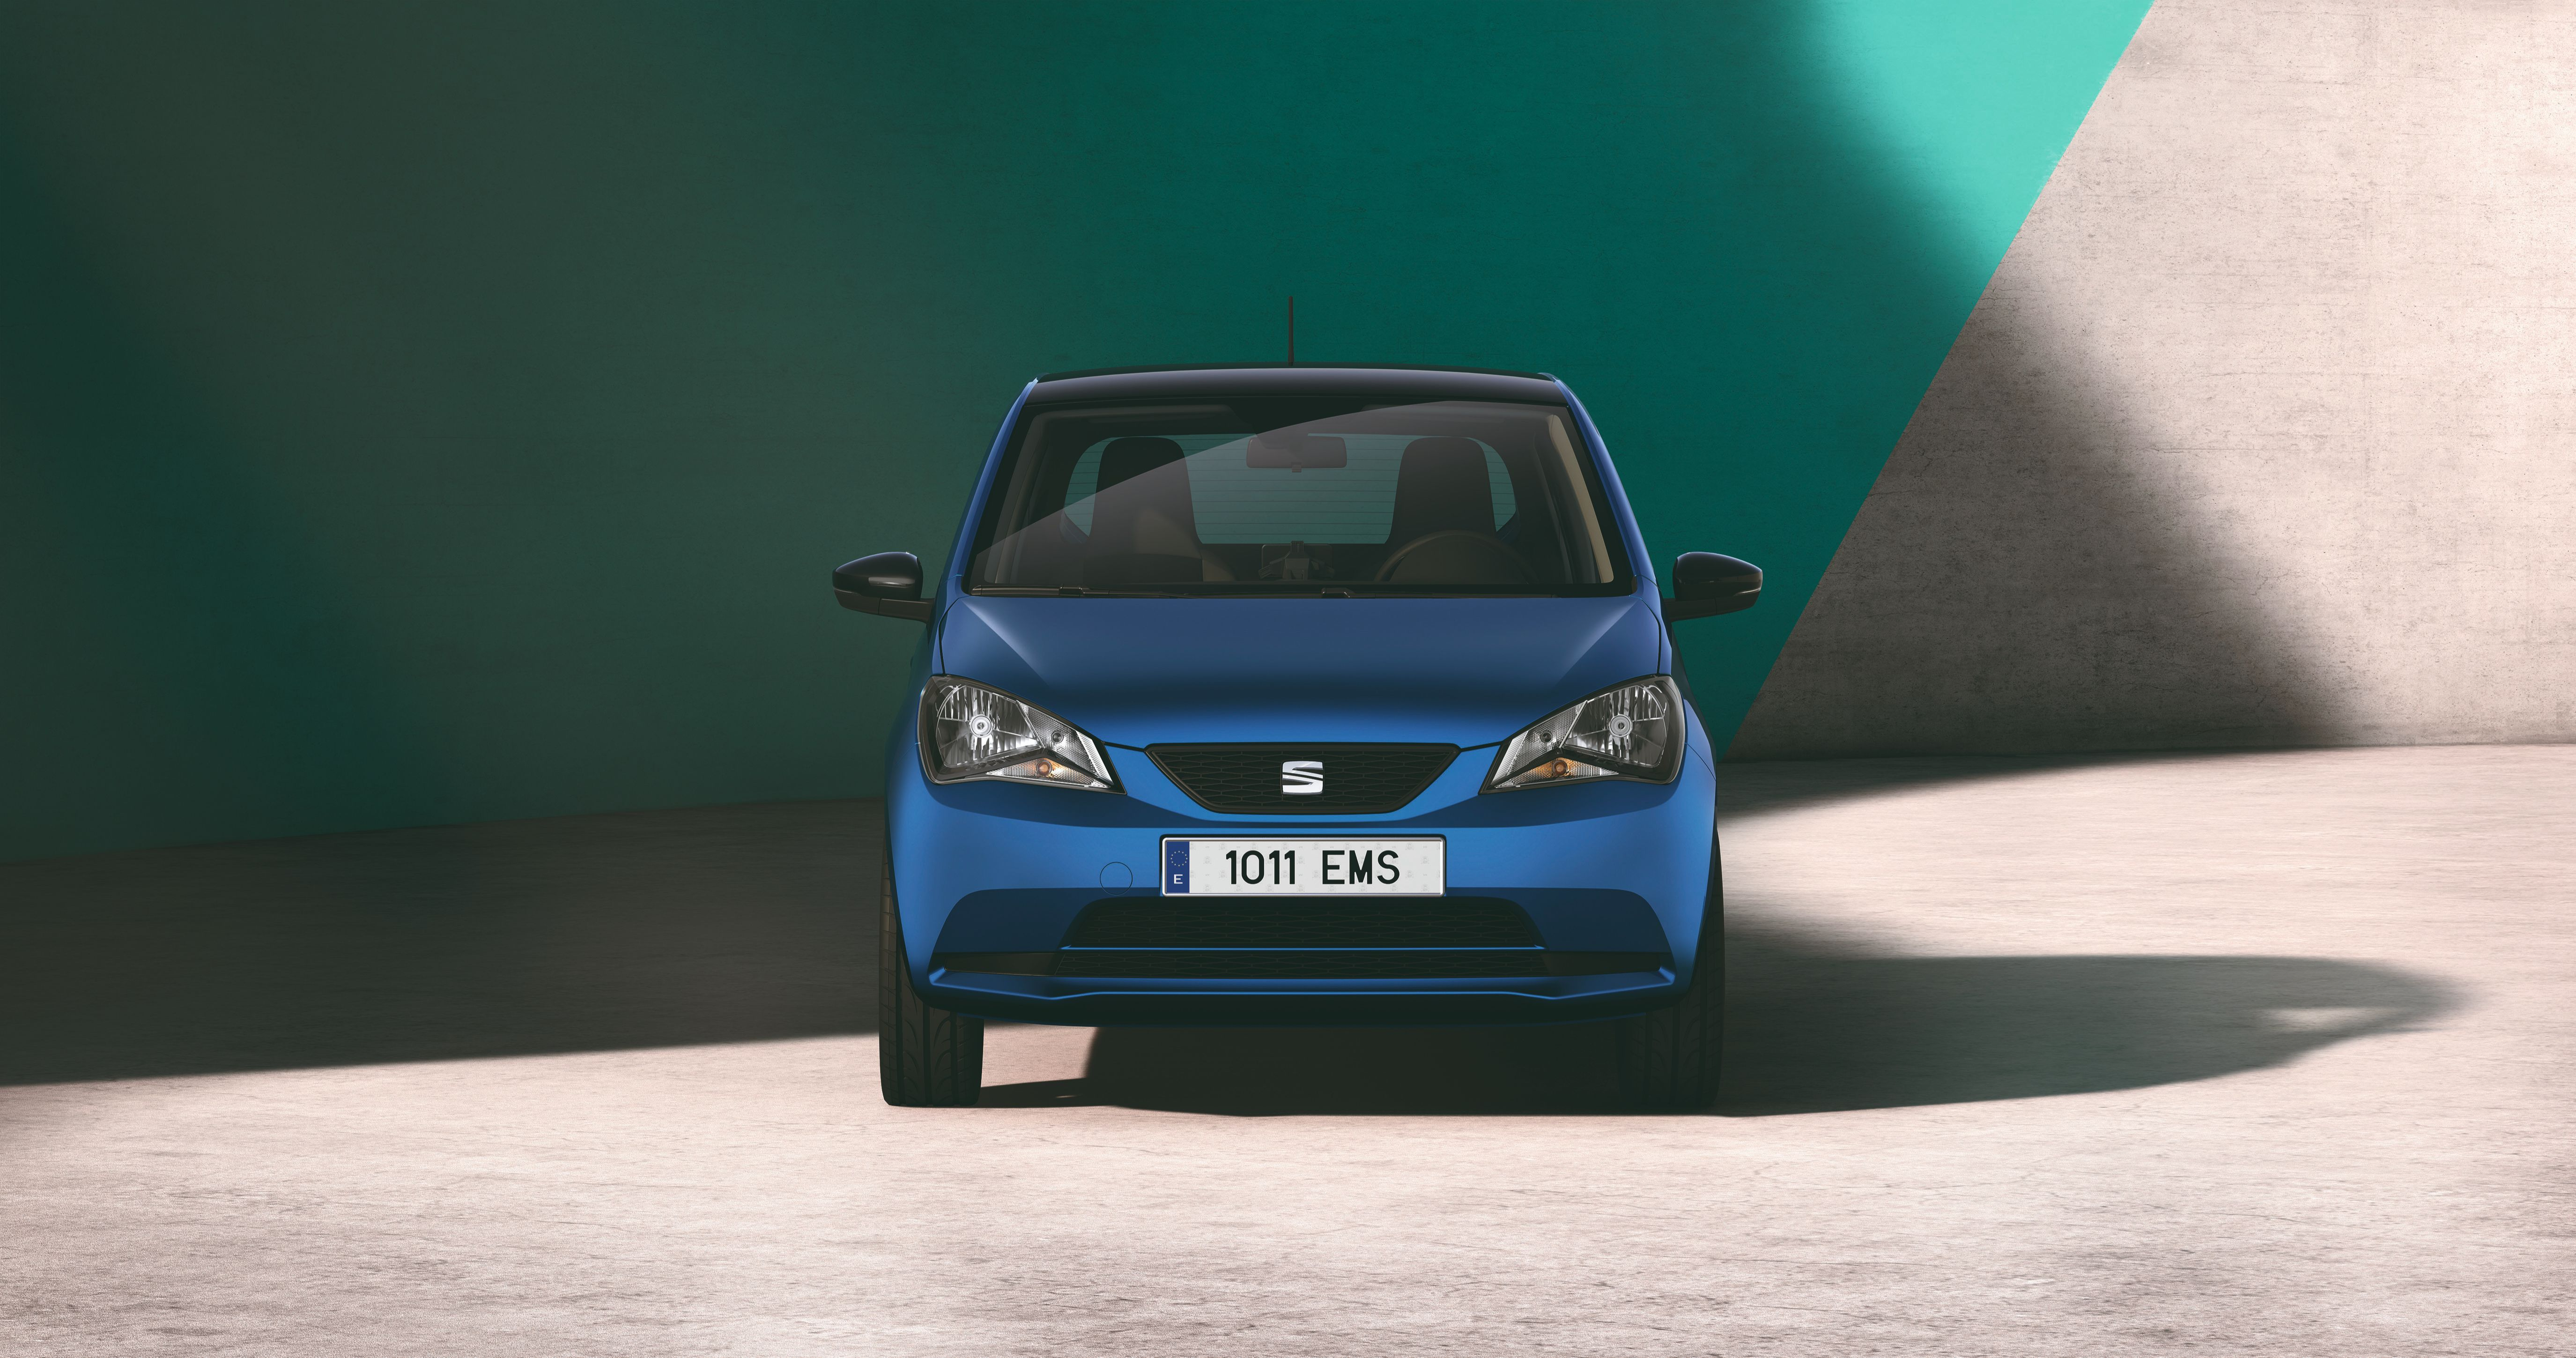 Front view of the SEAT Mii electric